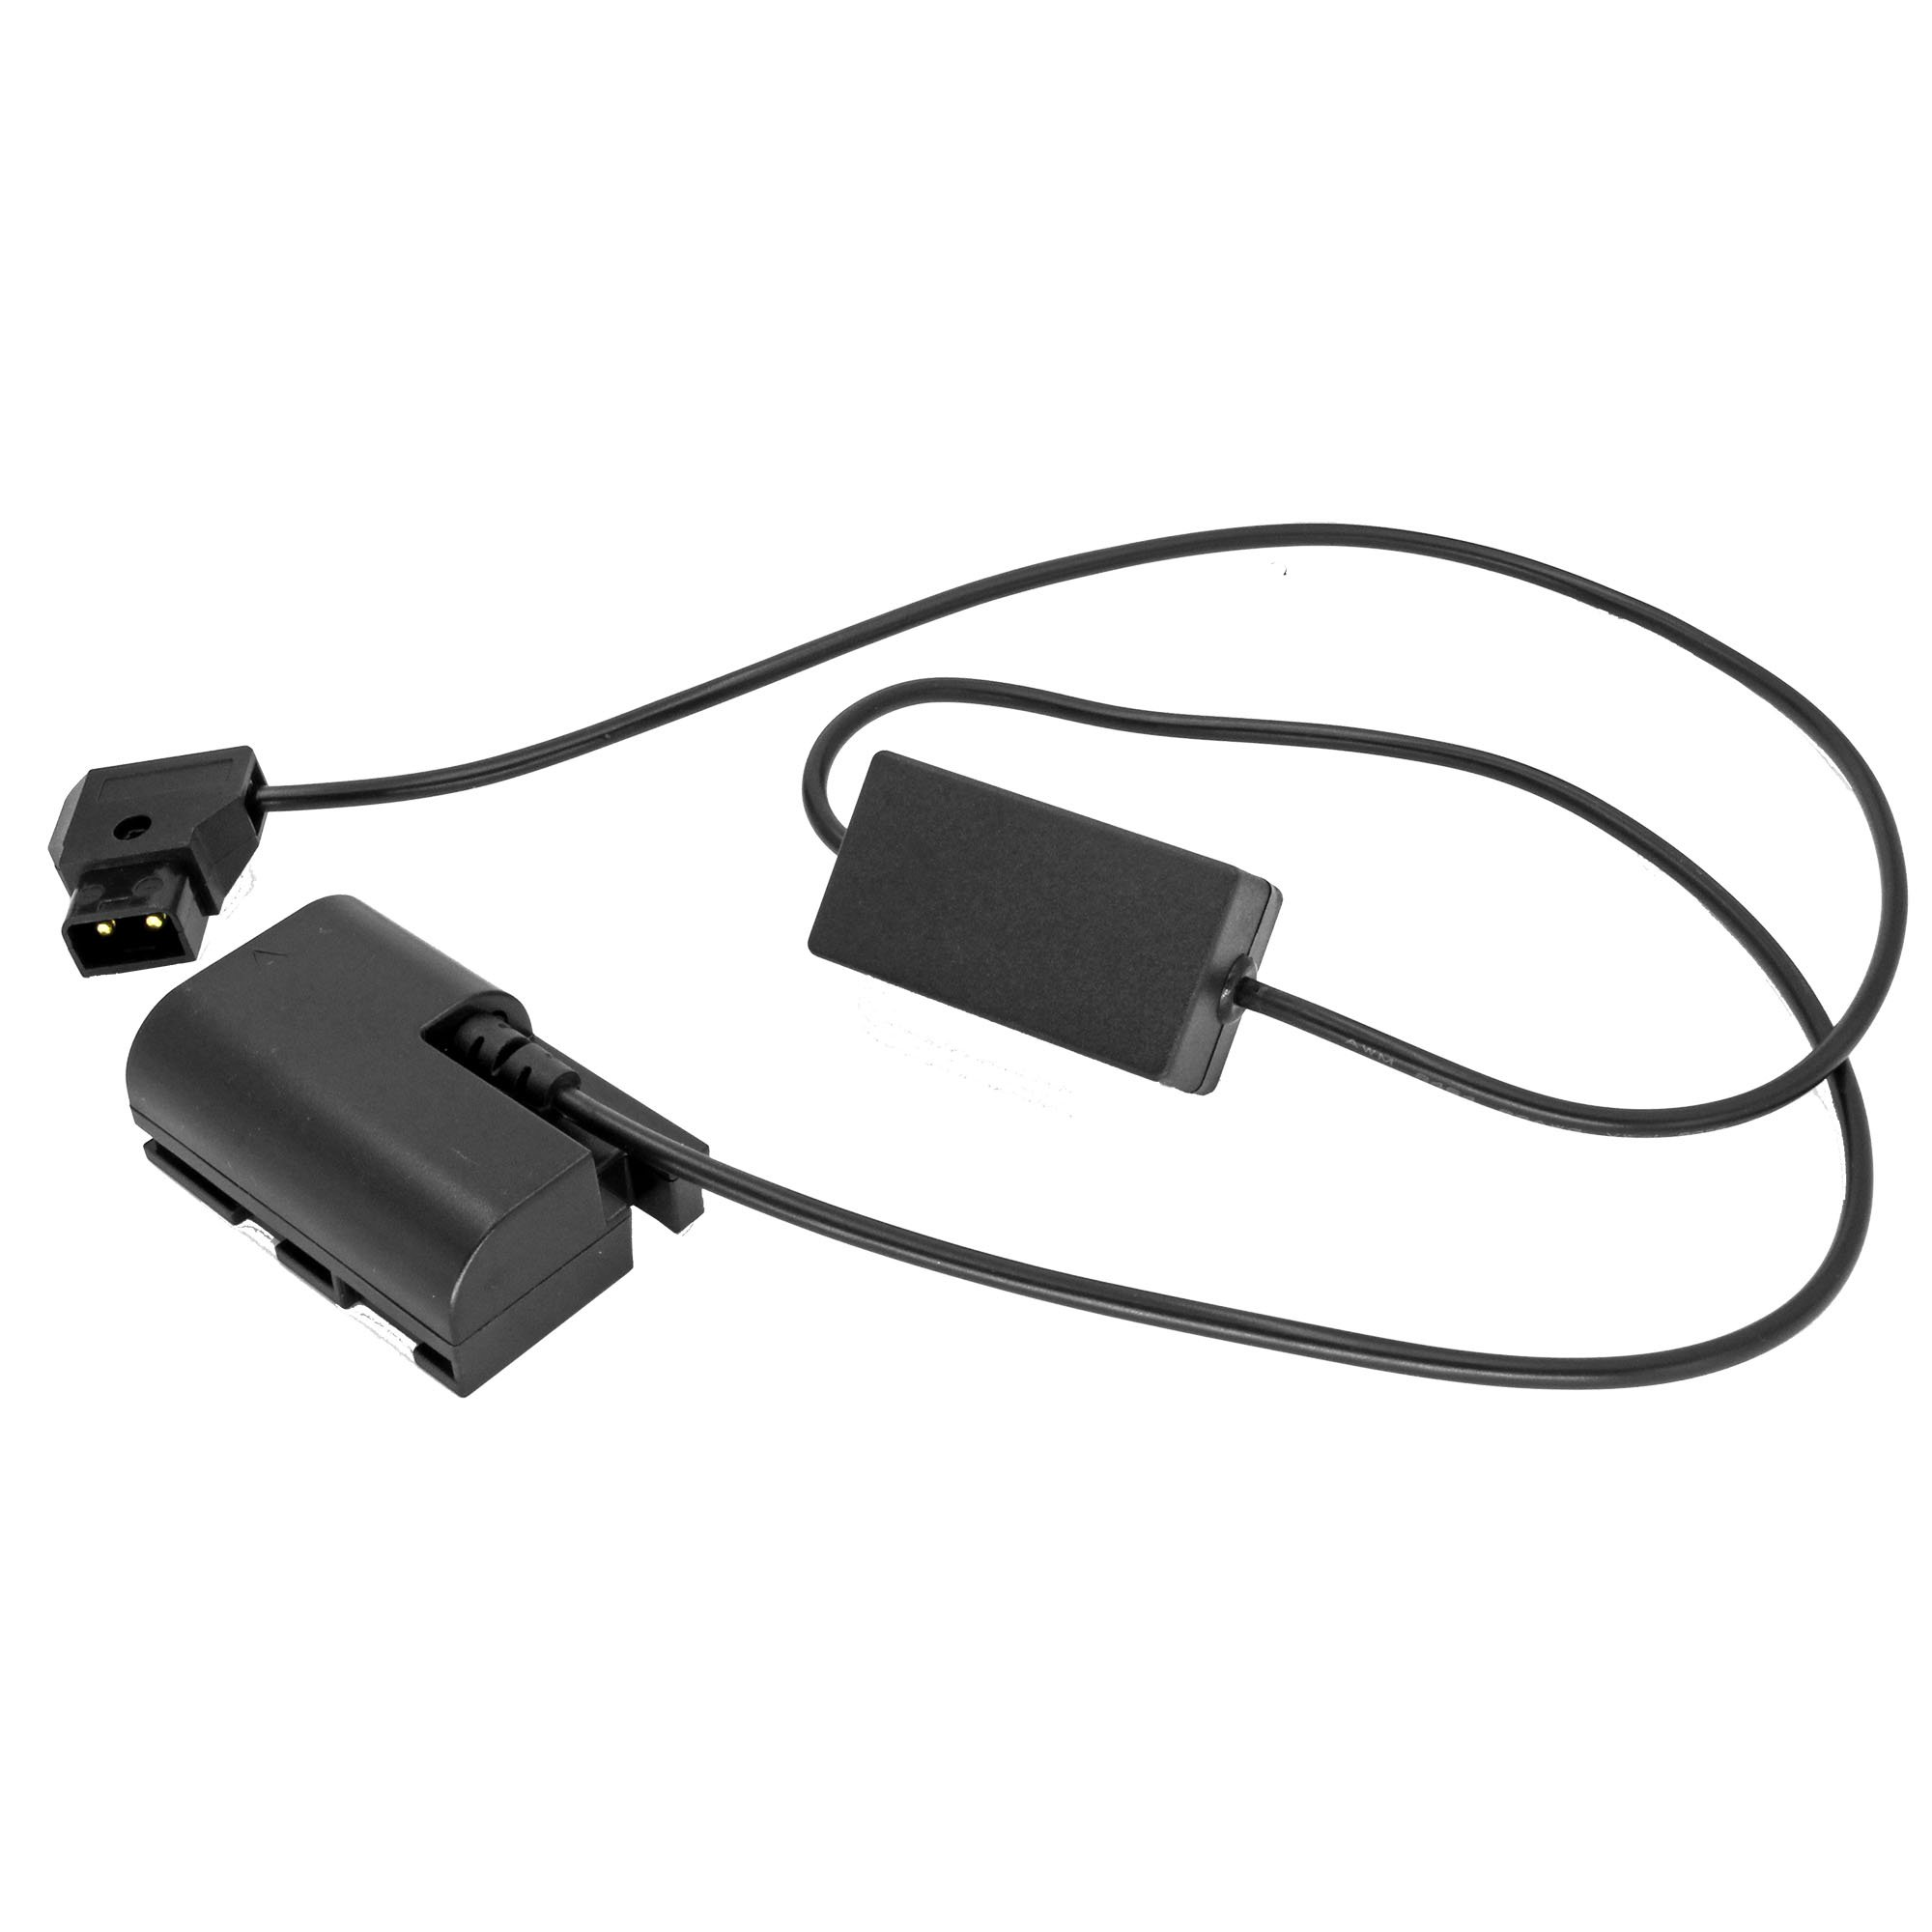 GyroVu High Power (4.5 Amps) D-Tap to Canon LP-E6 Dummy Battery 30' Straight Intelligent Adapter Cable with Reverse Polarity protection (V2)